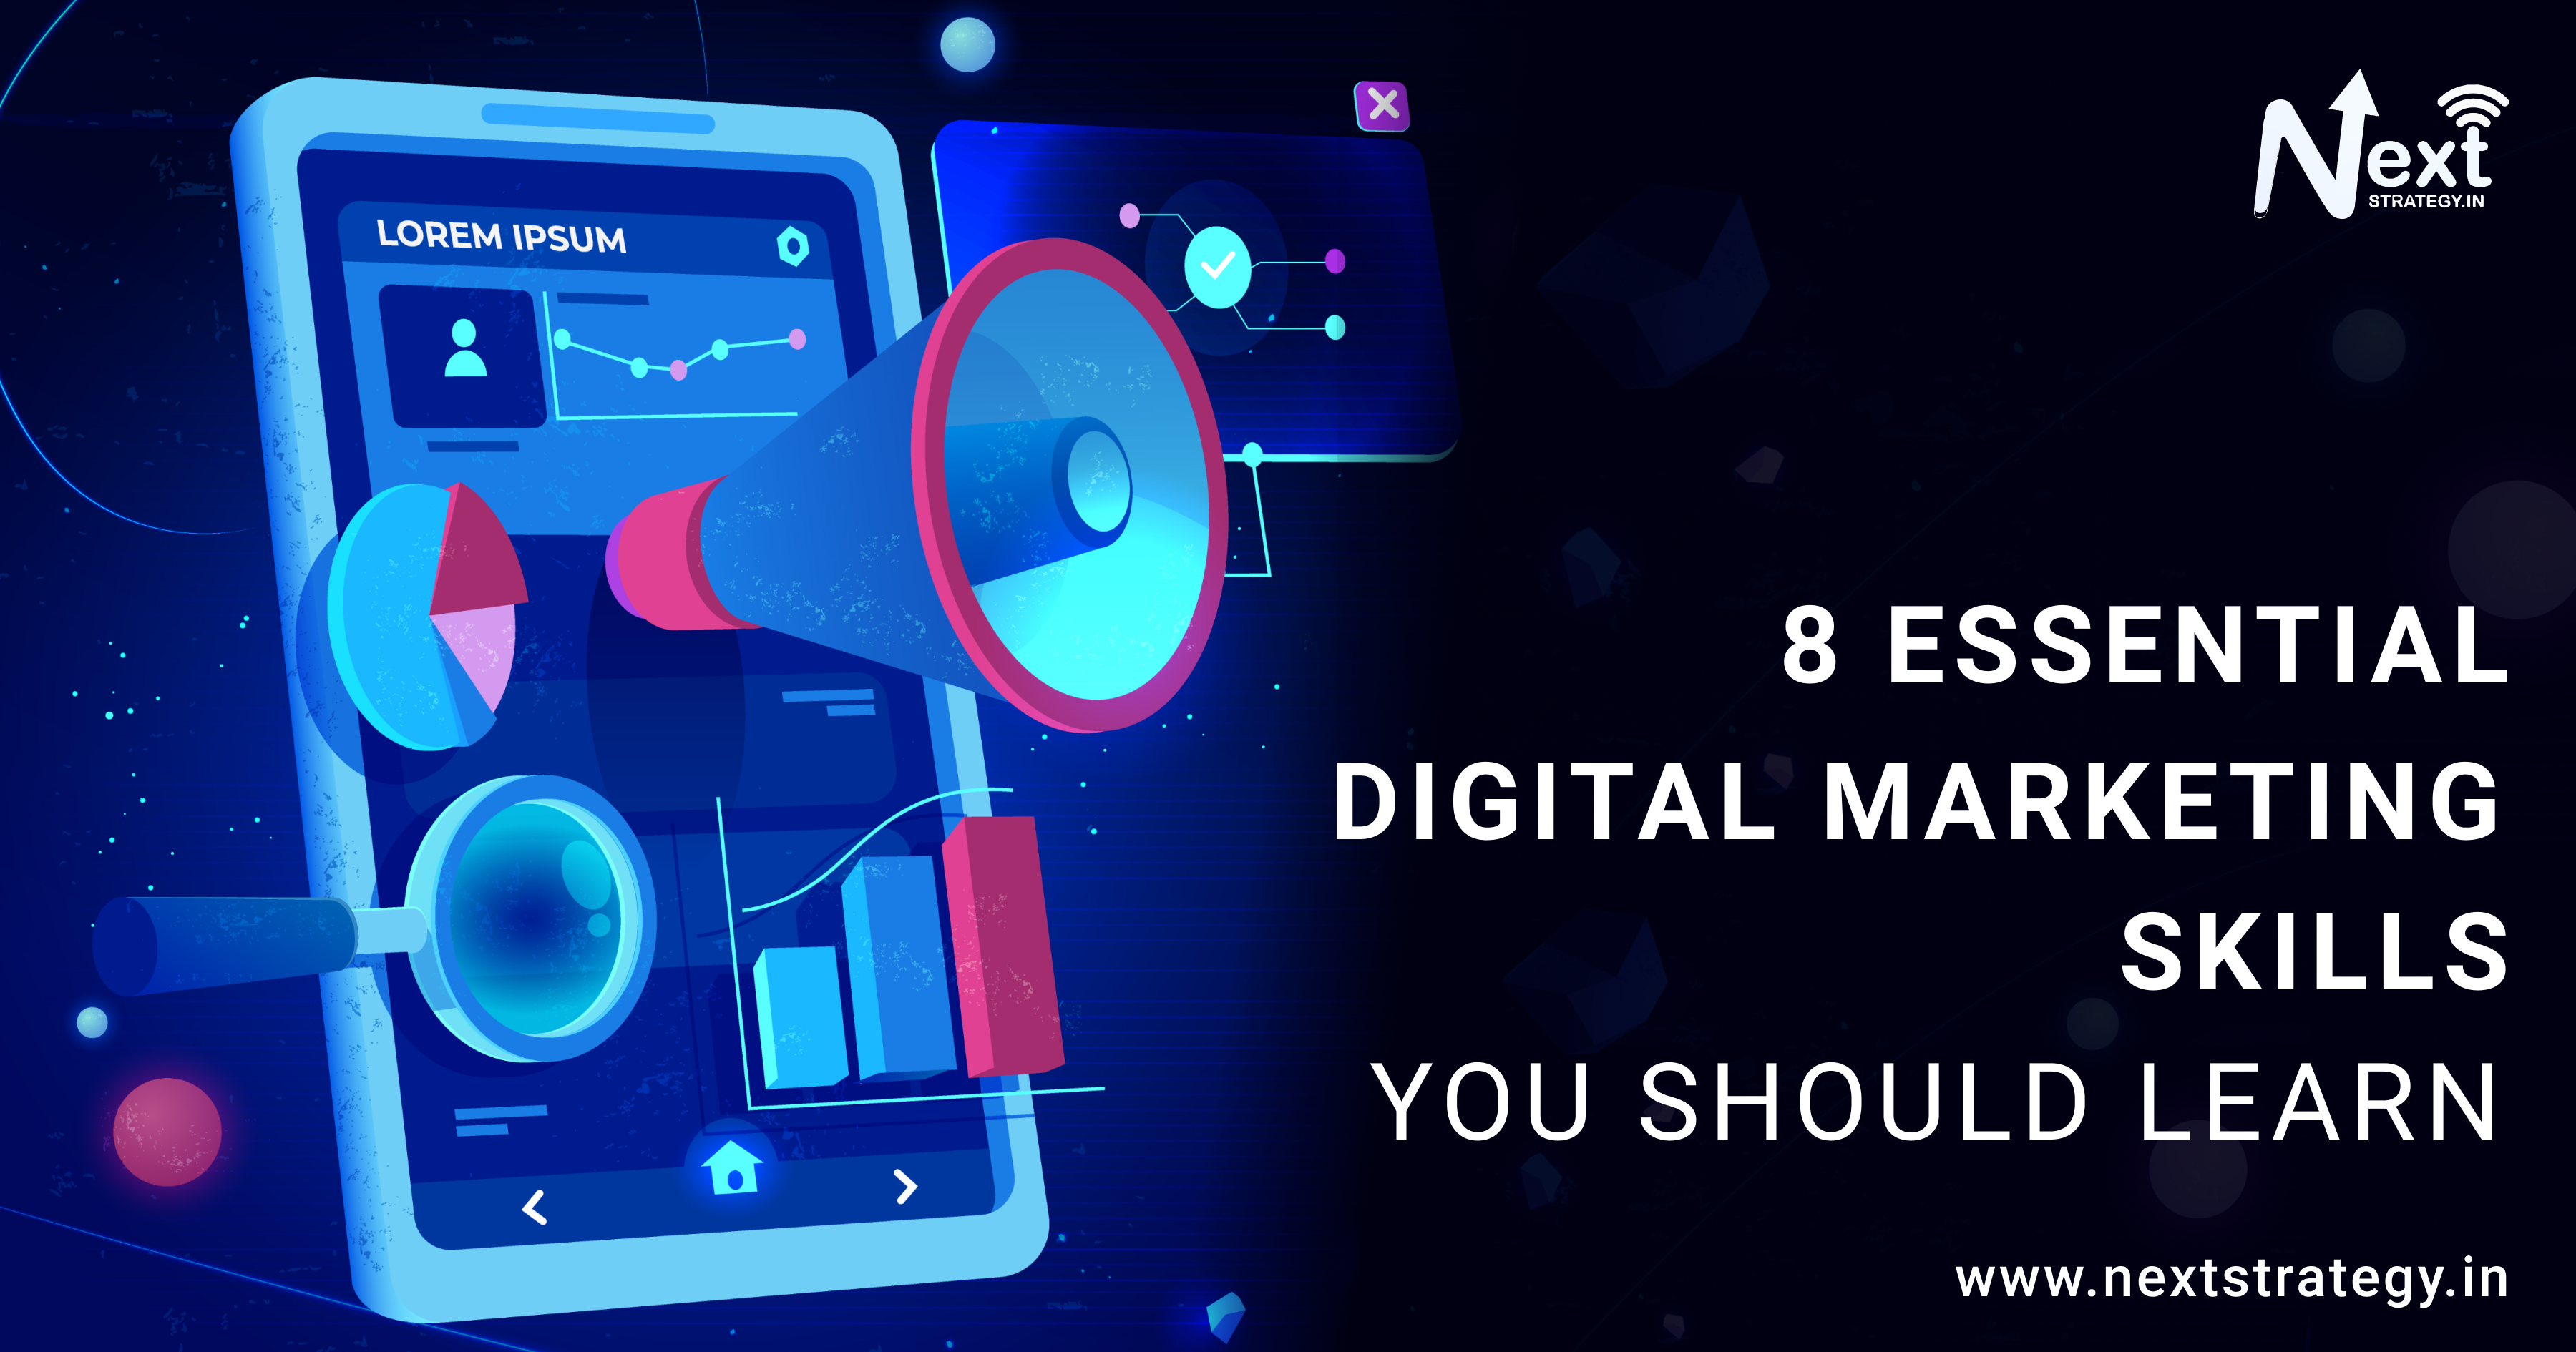 8-ESSENTIAL-Digital-Marketing-Skills-you-should-learn-Next-Strategy